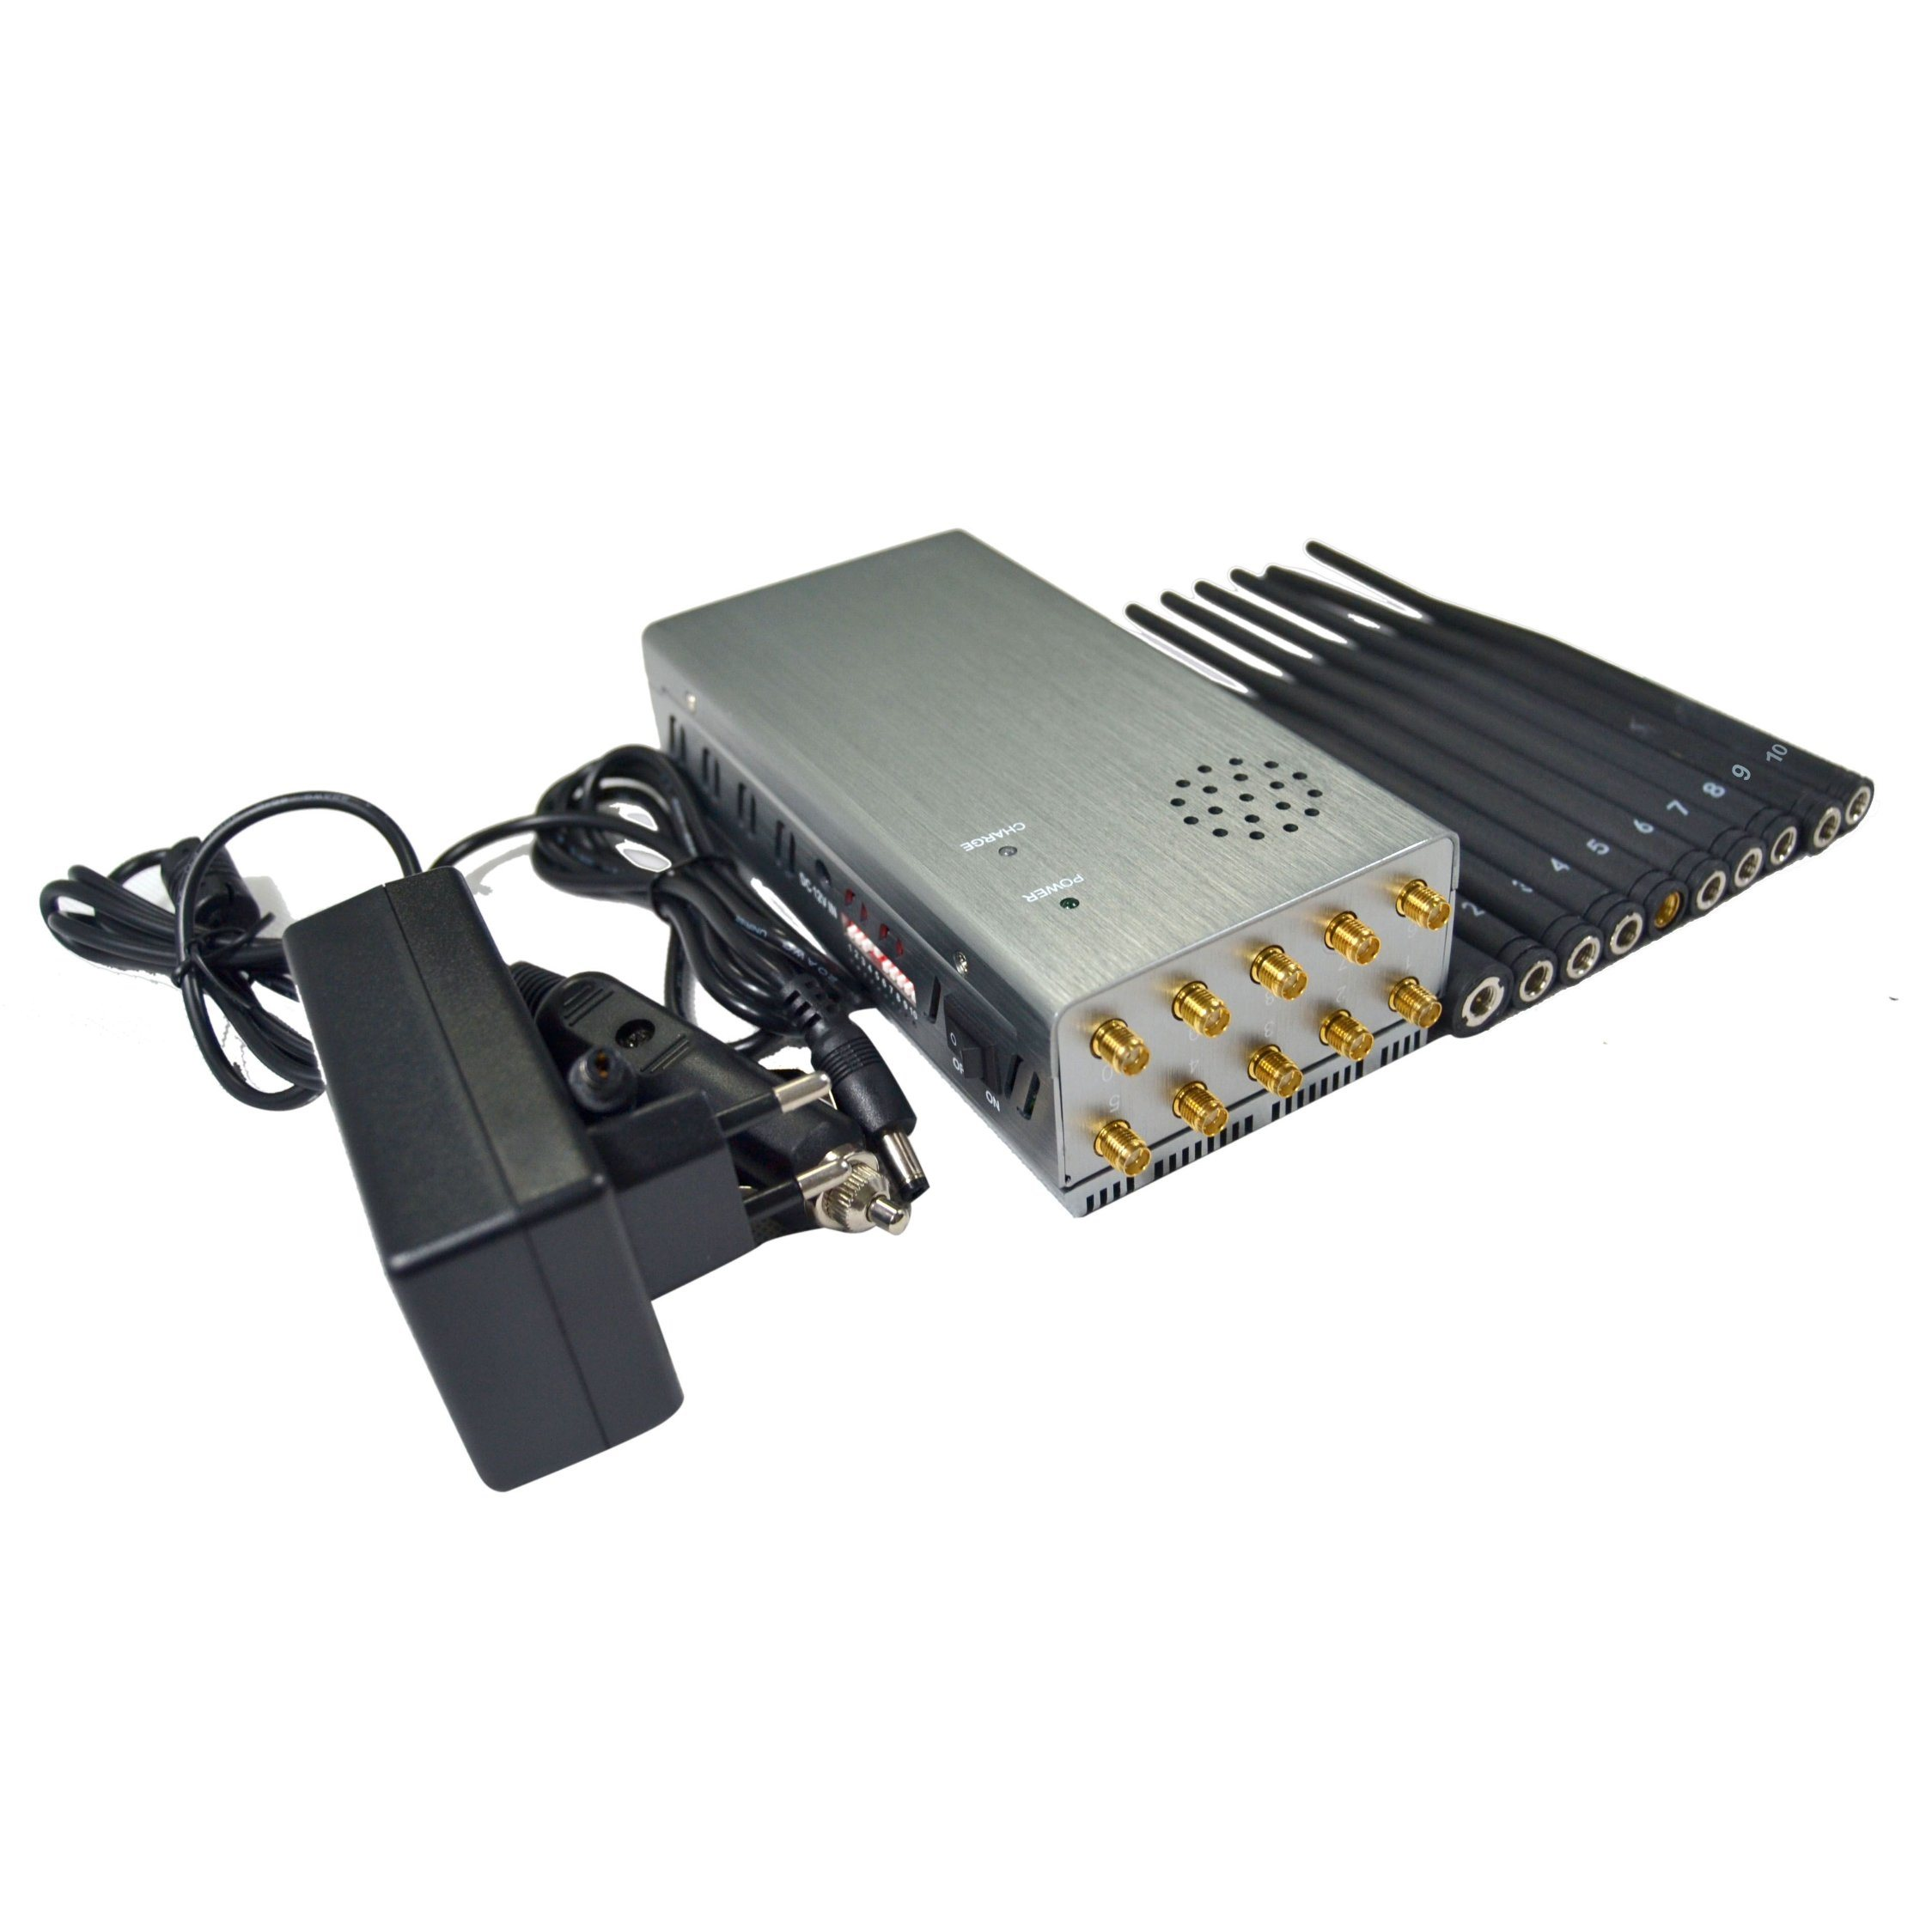 home phone jammer devices - China The King of Portable Jammers with 8000mA and 10 Antennas Including 2g 3G 4G 5g GPS 433MHz315MHz868MHz WiFi - China 8000mA Battery Jammer, Large Volume Power Signal Blocker